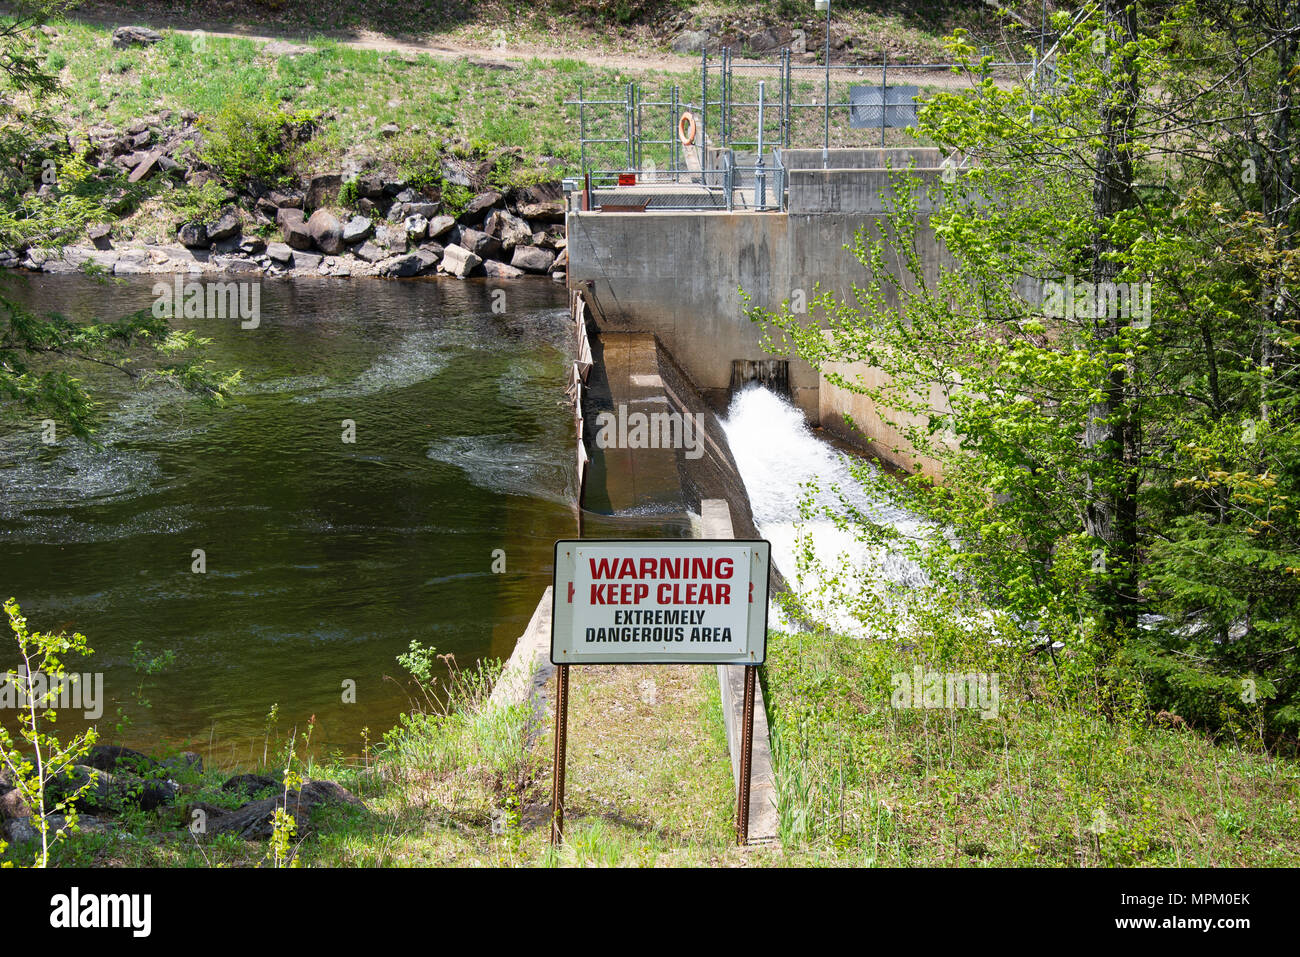 A Warning Keep Clear sign at the Christine Falls Hydroelectric dam in the Town of Wells, NY USA - Stock Image